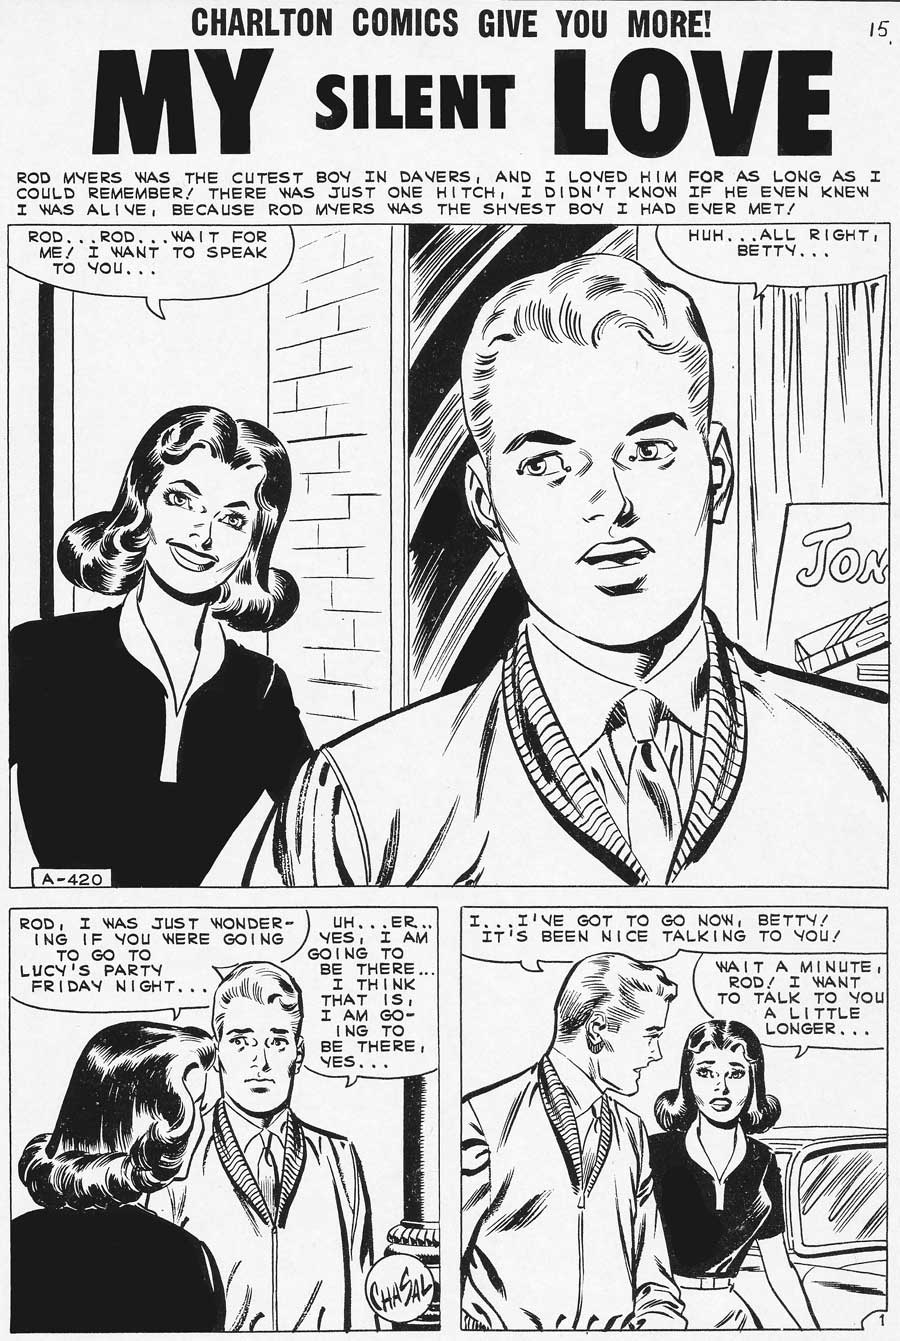 Art by ChaSal (Charles Nicholas & Sal Trapani) in First Kiss #21, 1961.